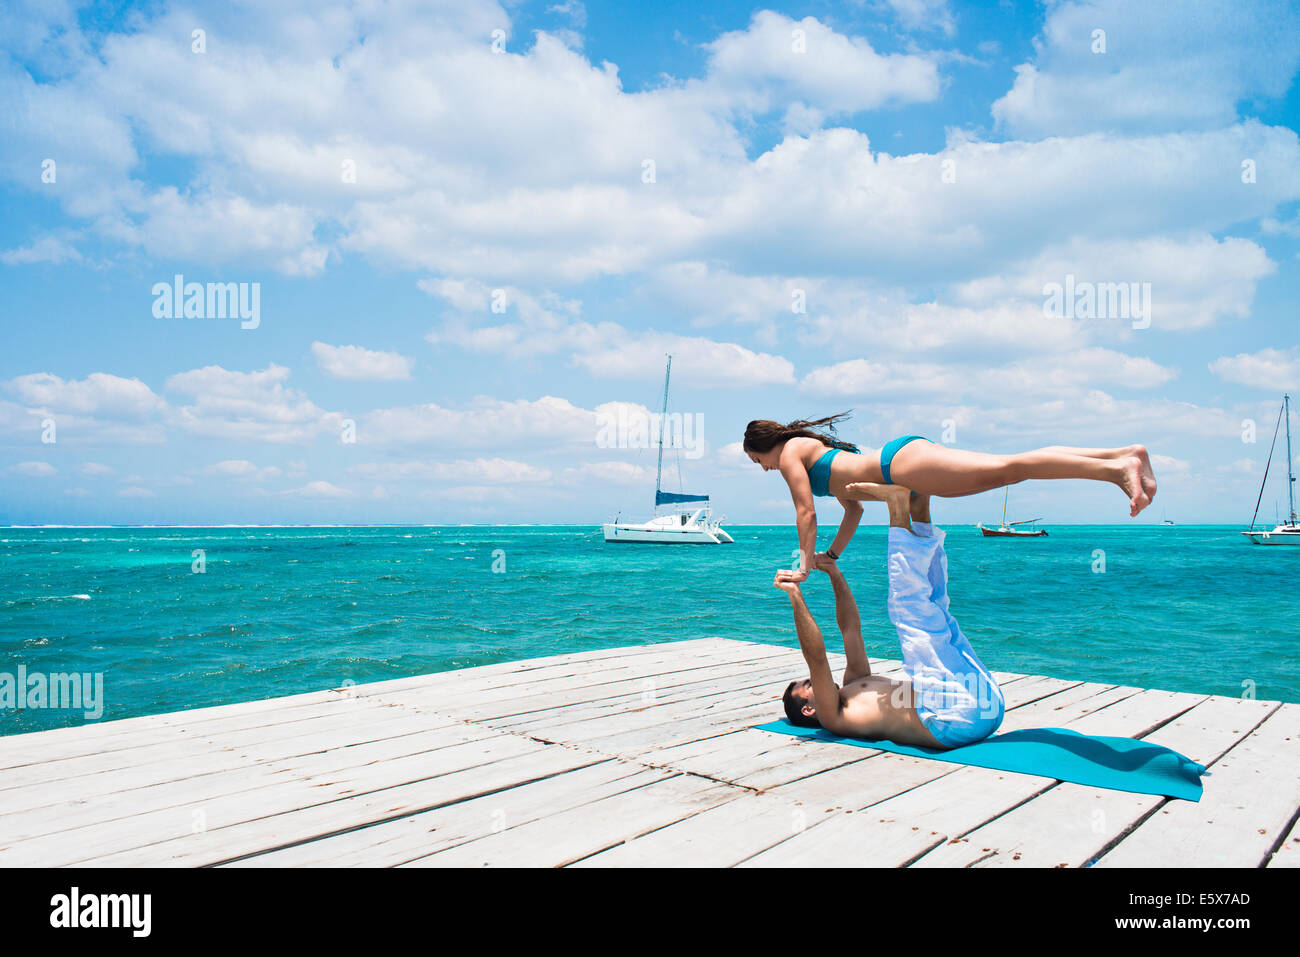 Young couple in airplane pose on pier, San Pedro, Belize - Stock Image